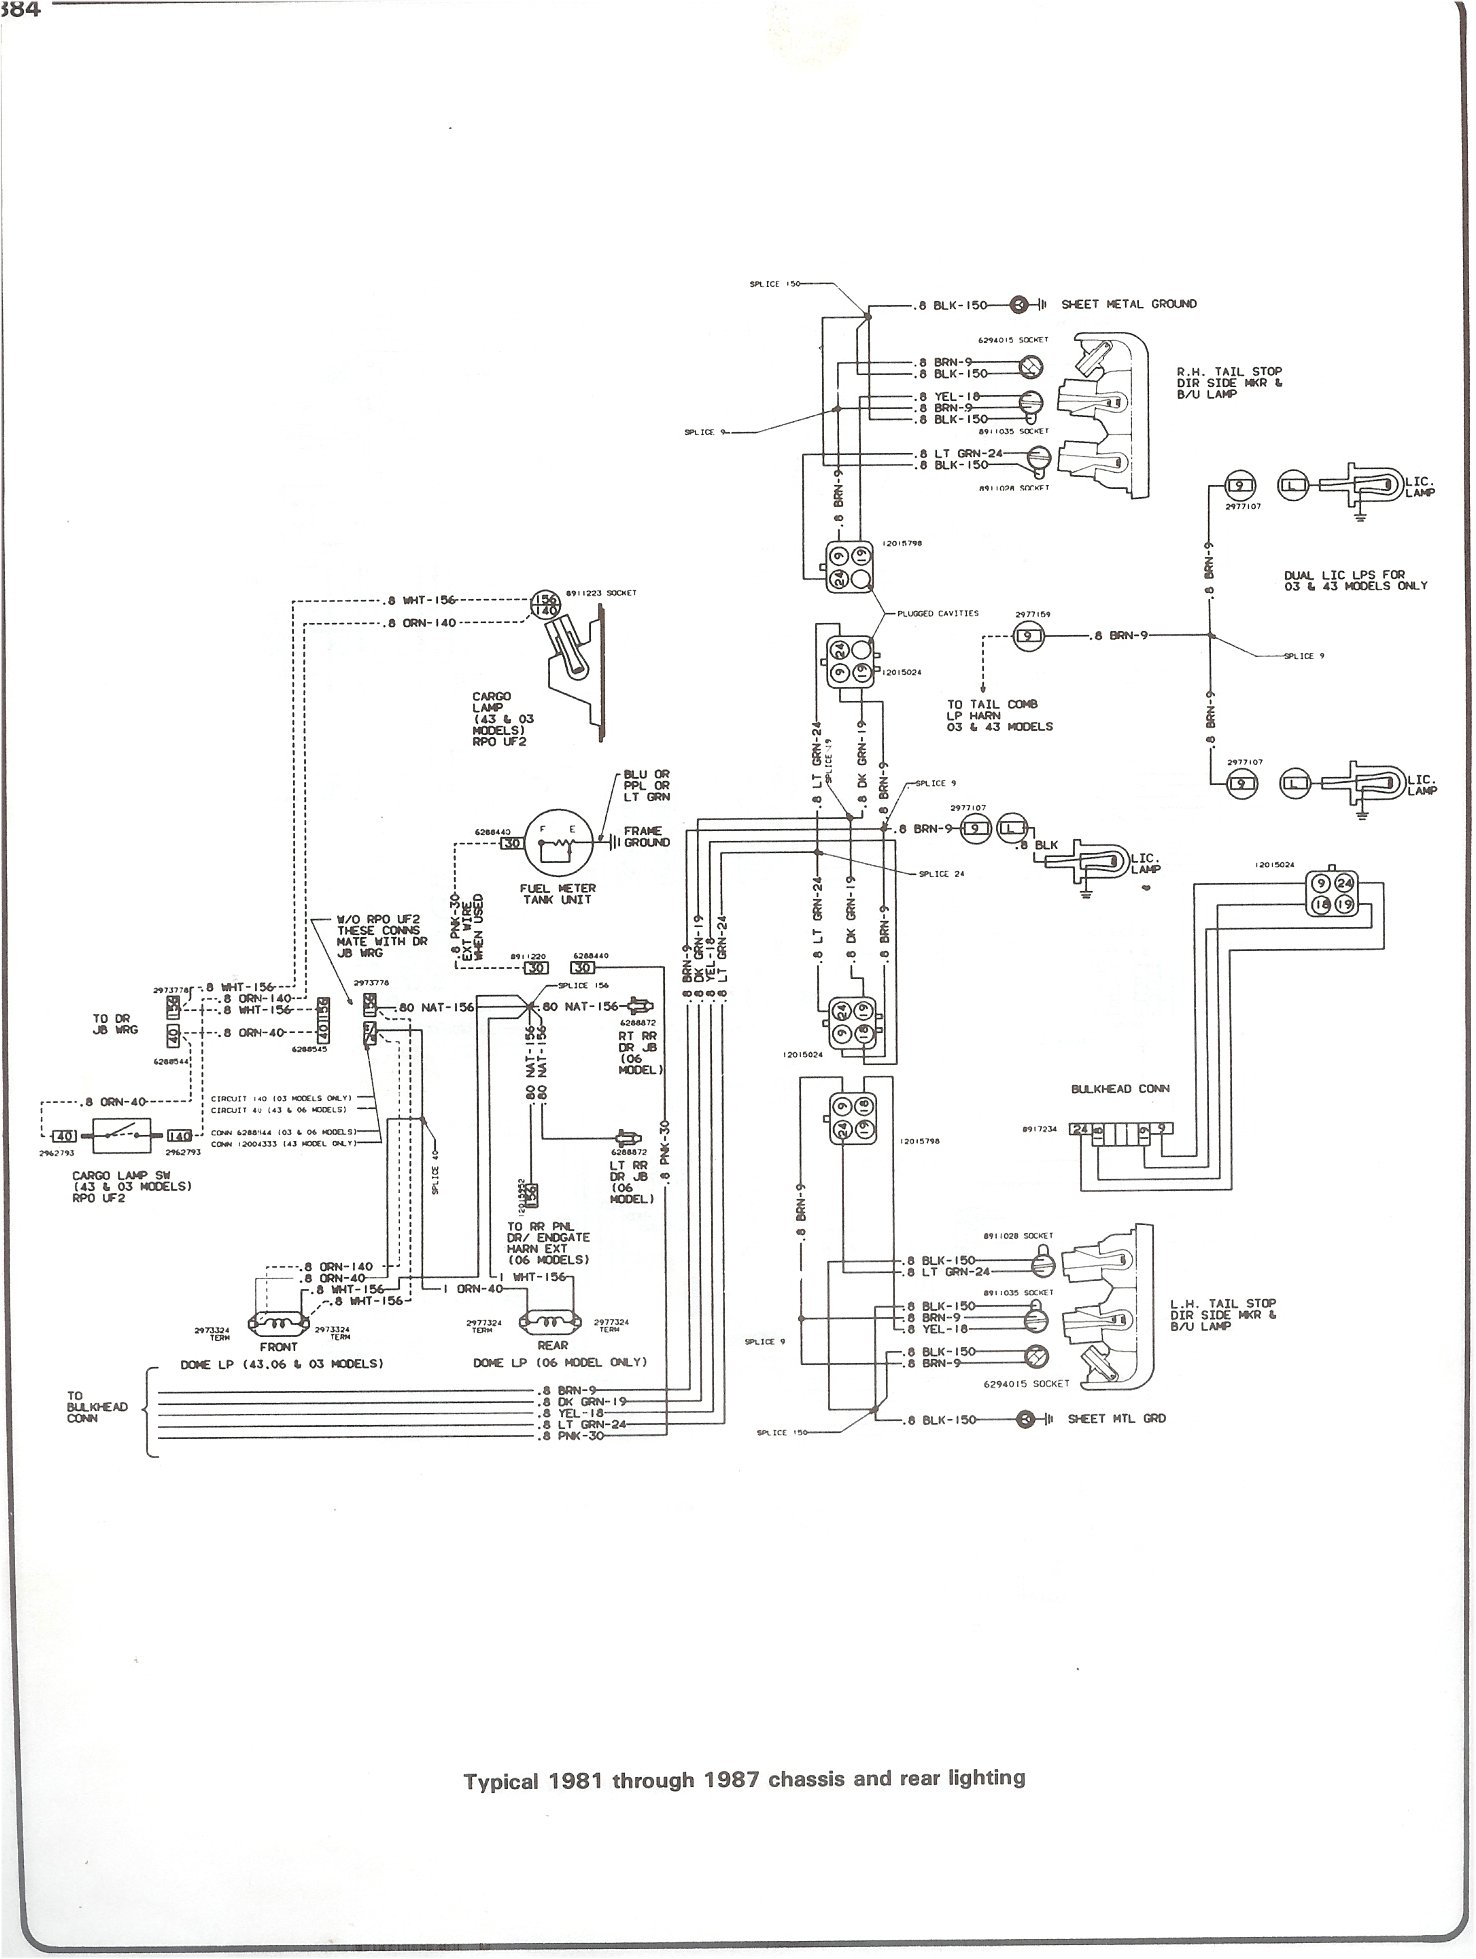 81 87_chass_rr_light complete 73 87 wiring diagrams 1986 chevy truck wiring diagram at gsmportal.co